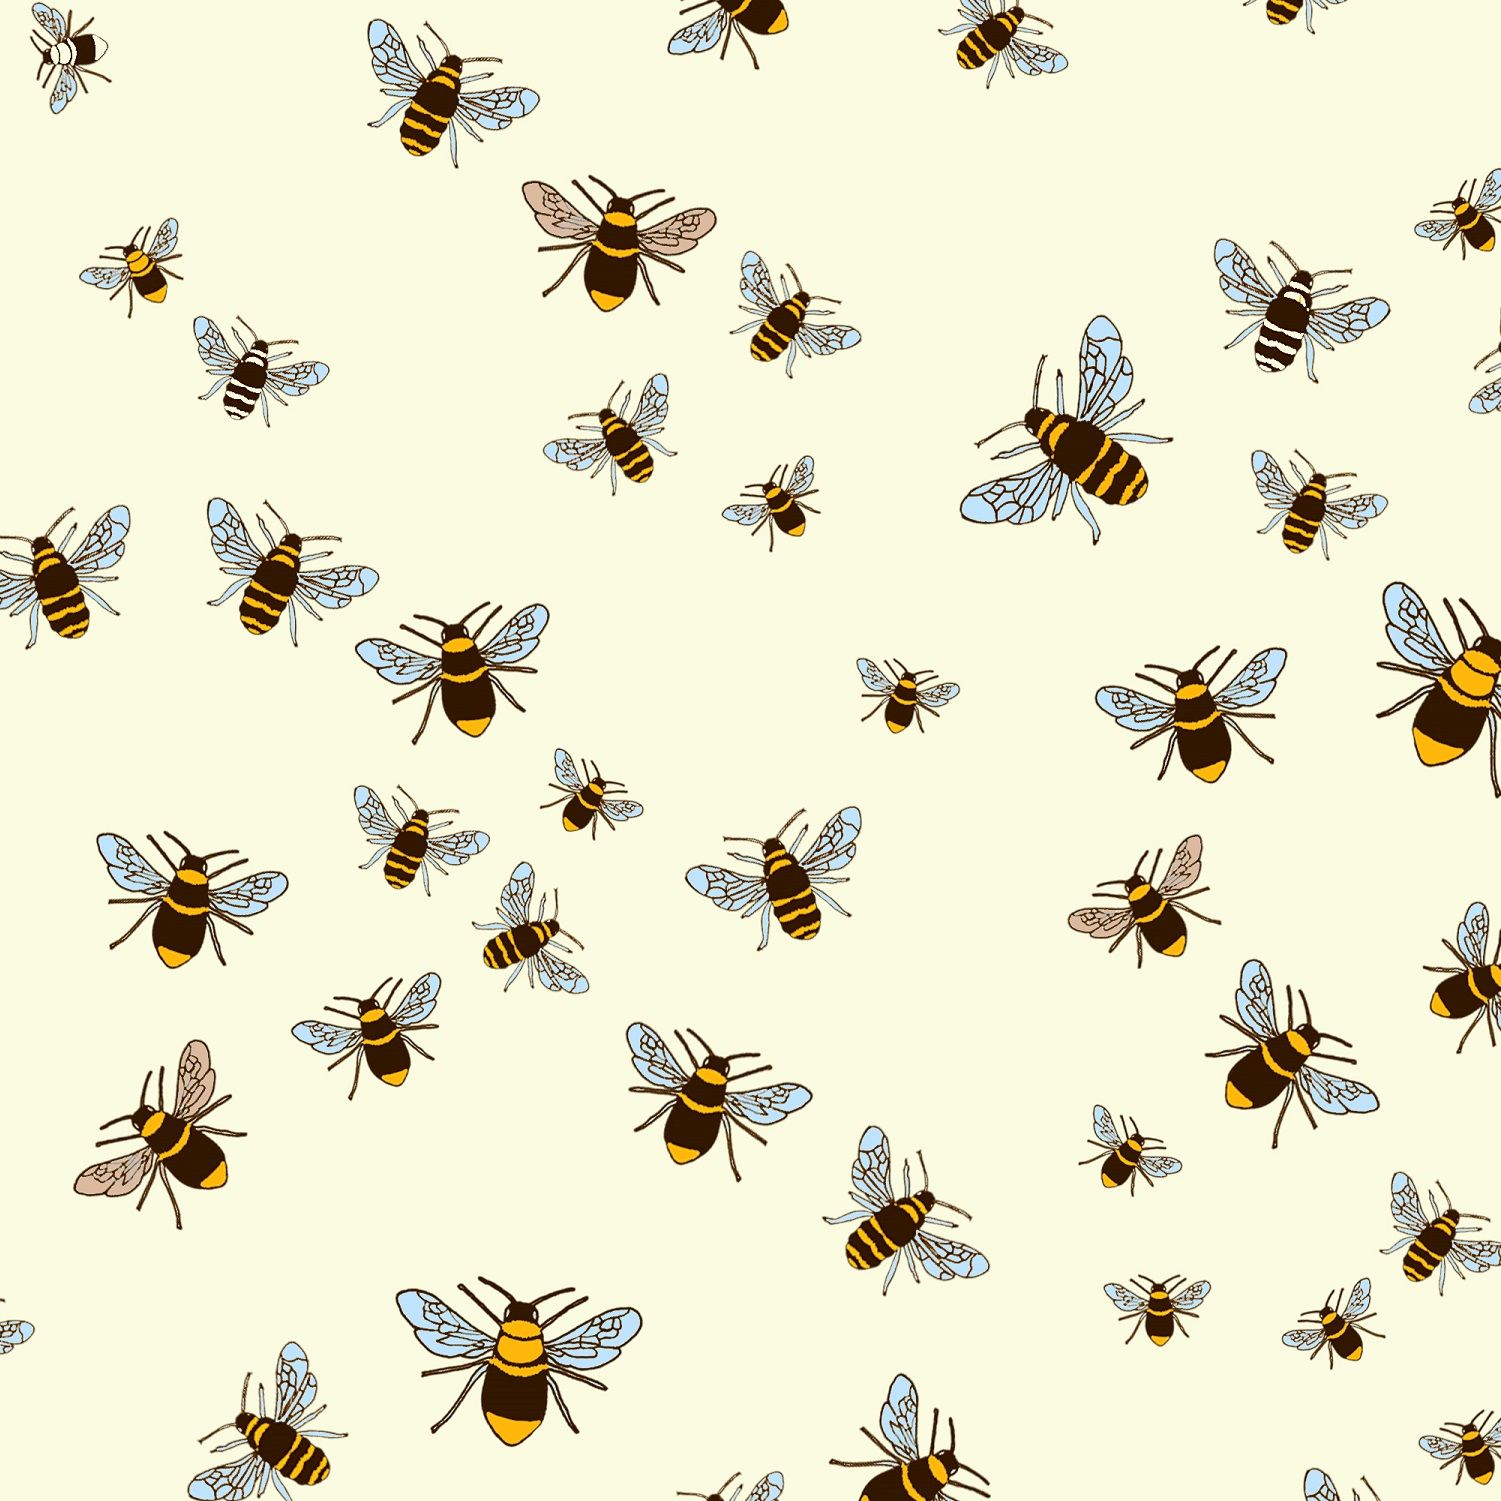 Vanishing Bees Worksheet